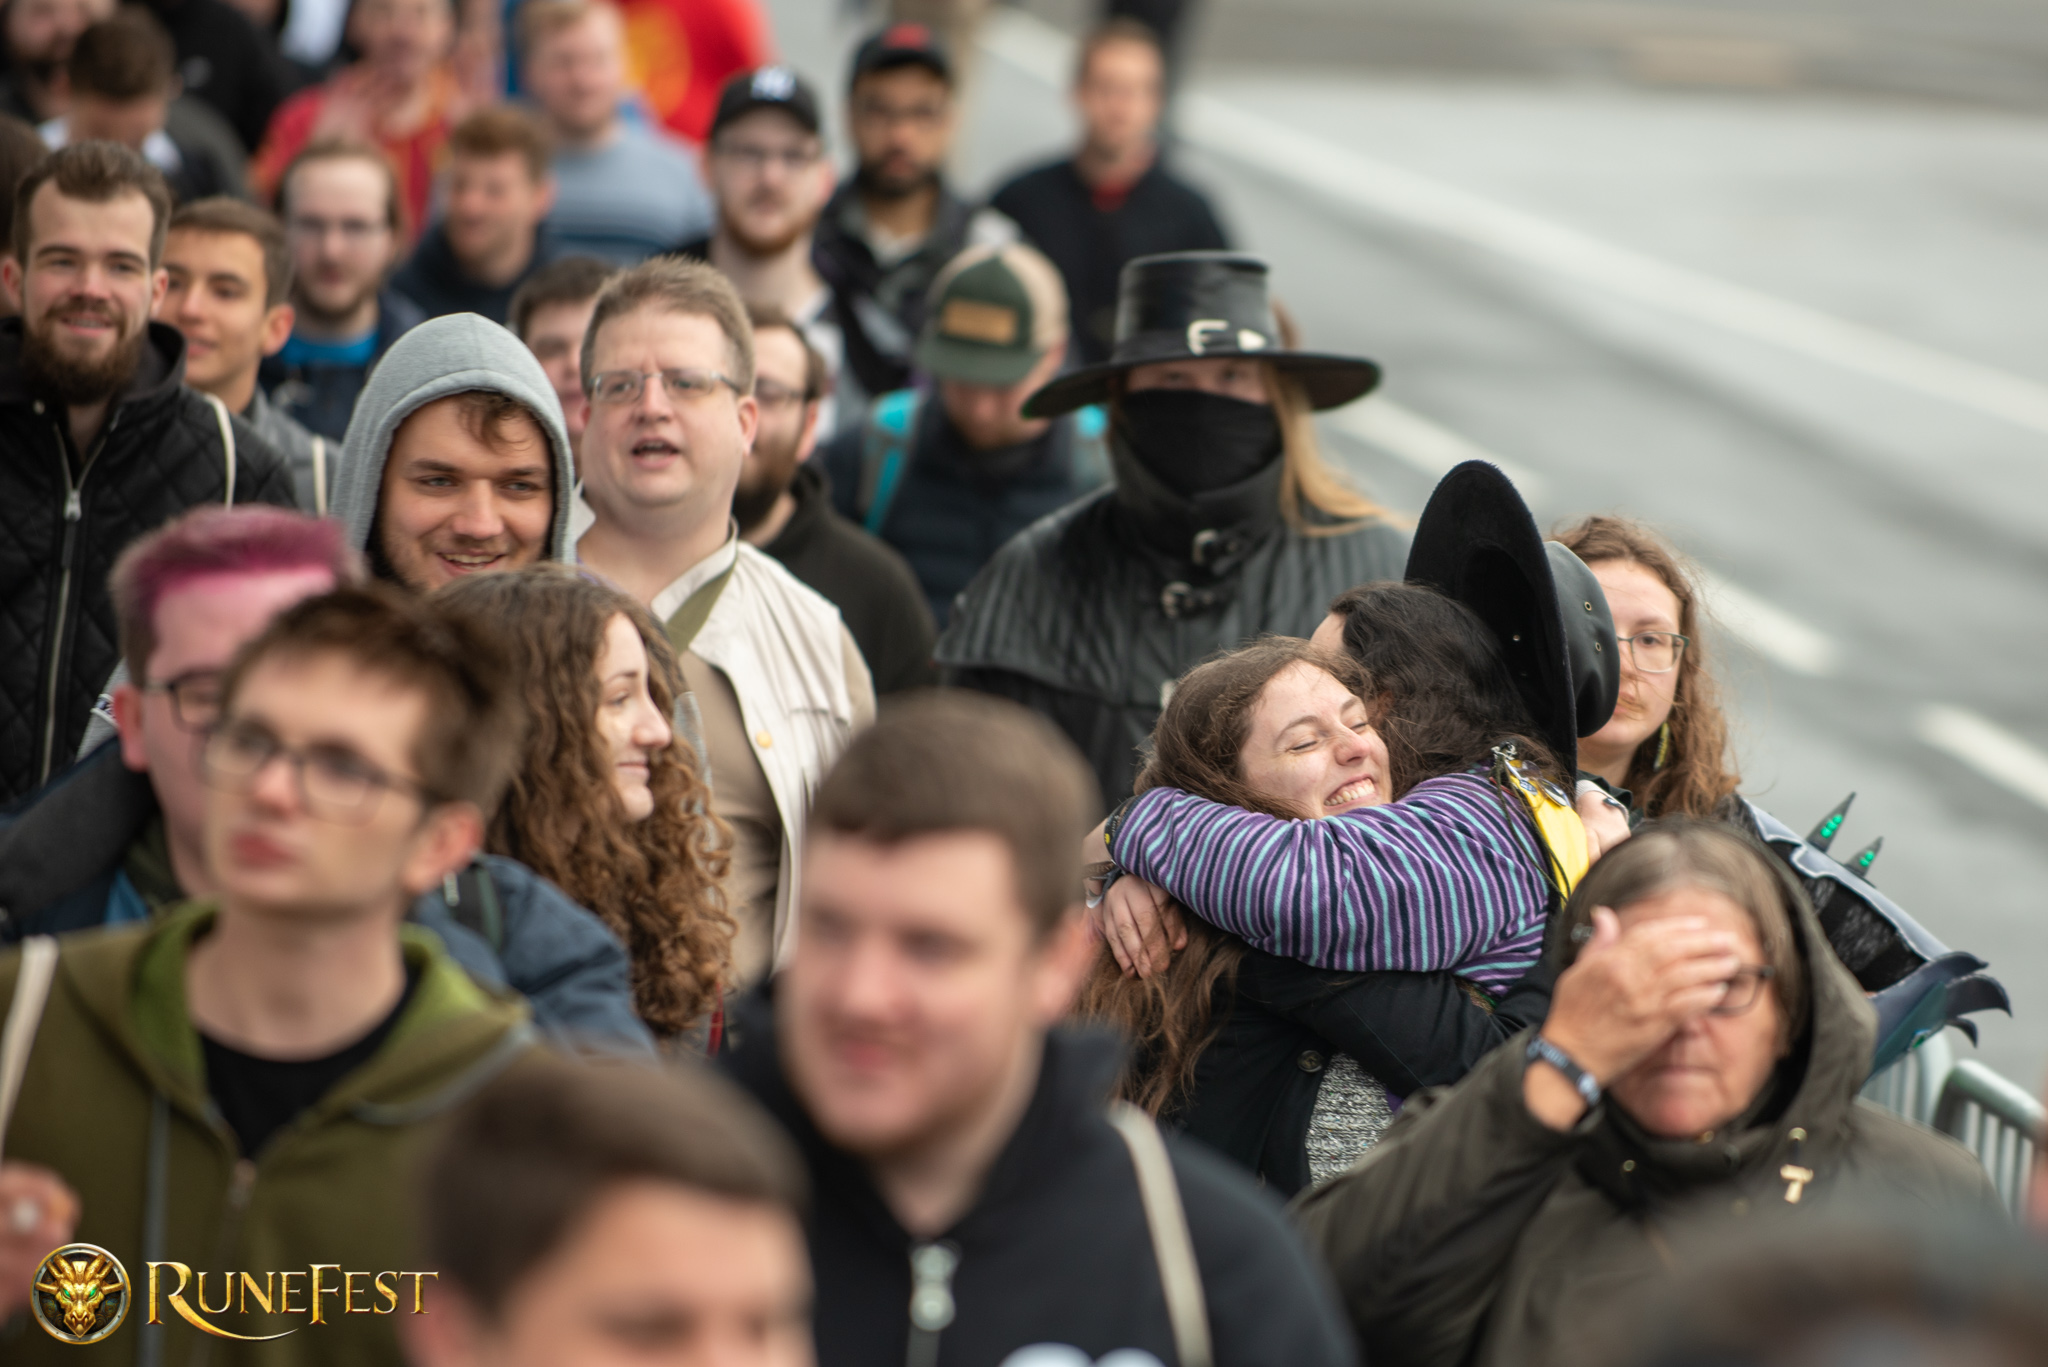 Runefest image - Two people hugging in the queue